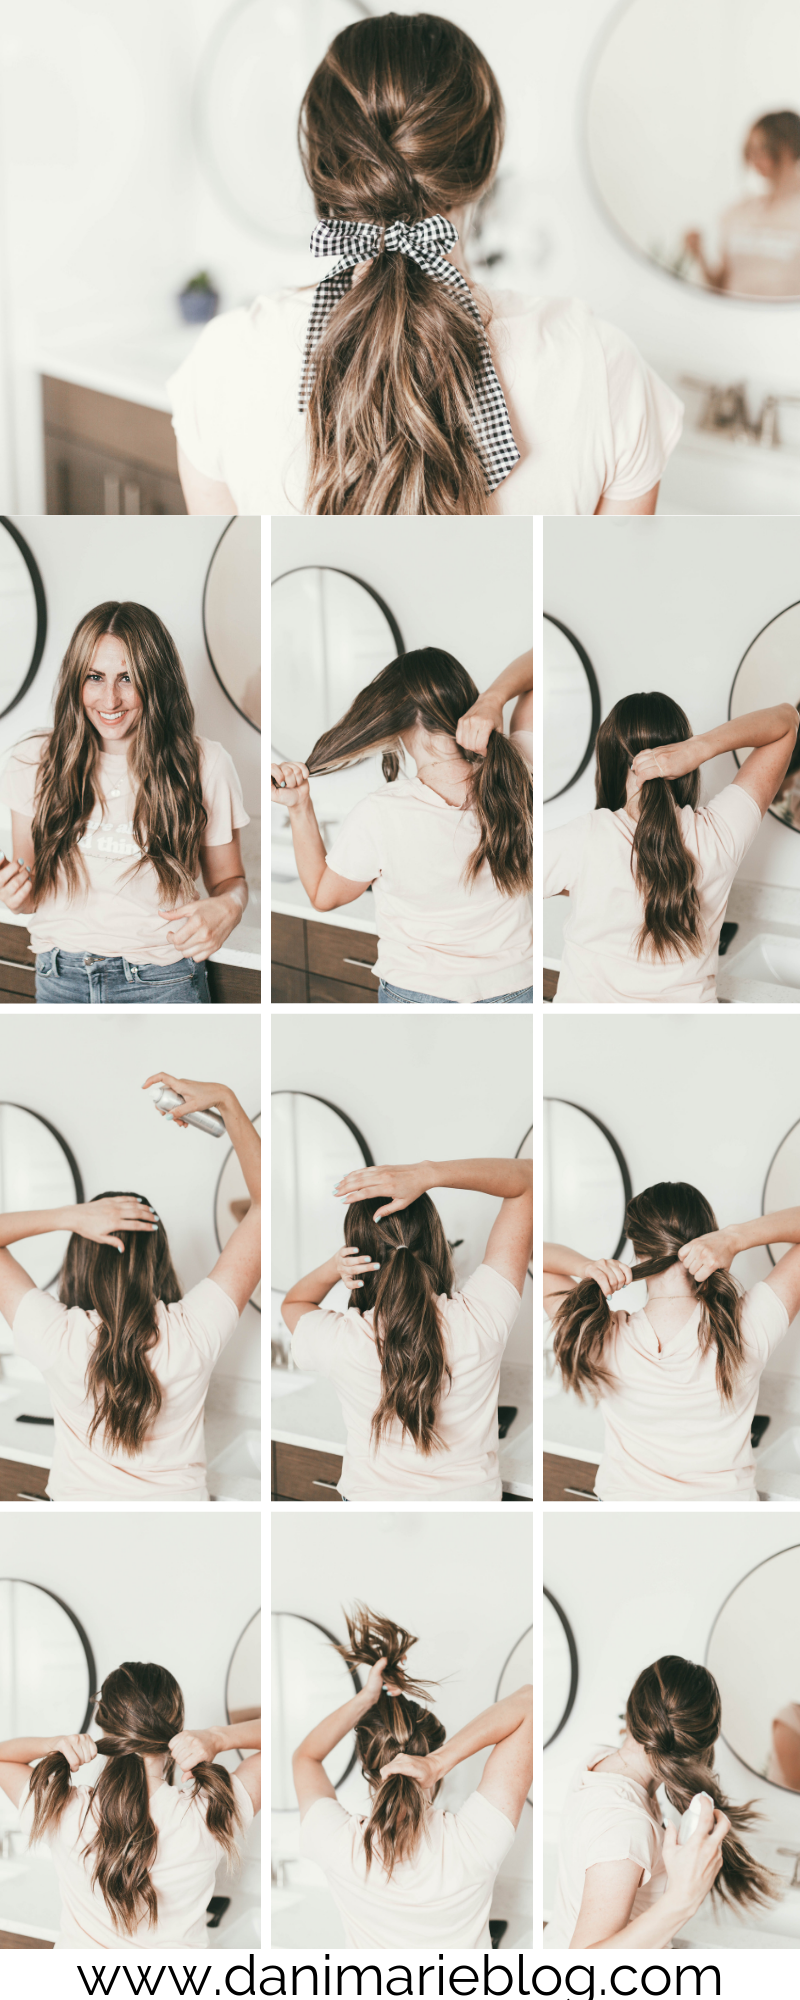 Curious how to jazz up a simple pony tail? Utah Style Blogger Dani Marie is sharing the prettiest simple pony tail tutorial here!